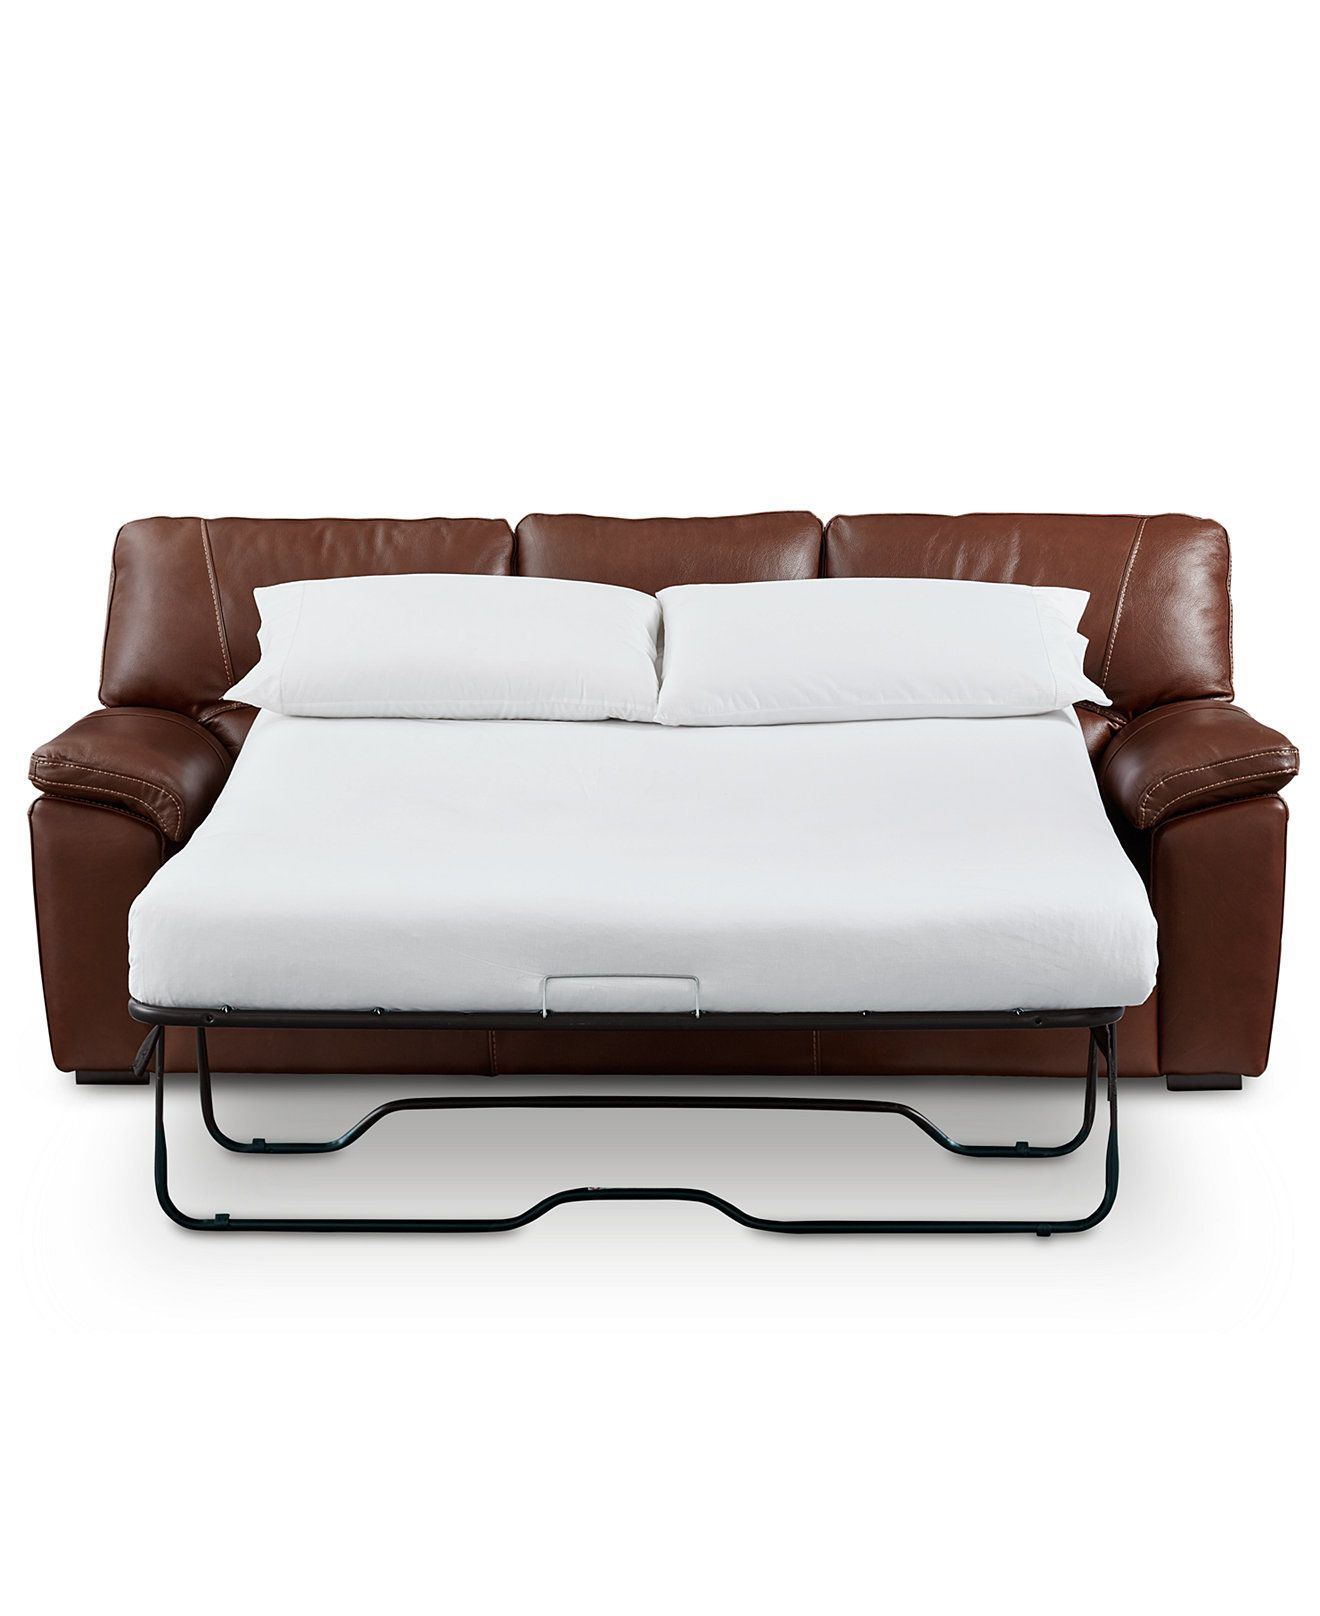 Bolivar Leather Queen Sleeper Sofa ly at Macy s Couches